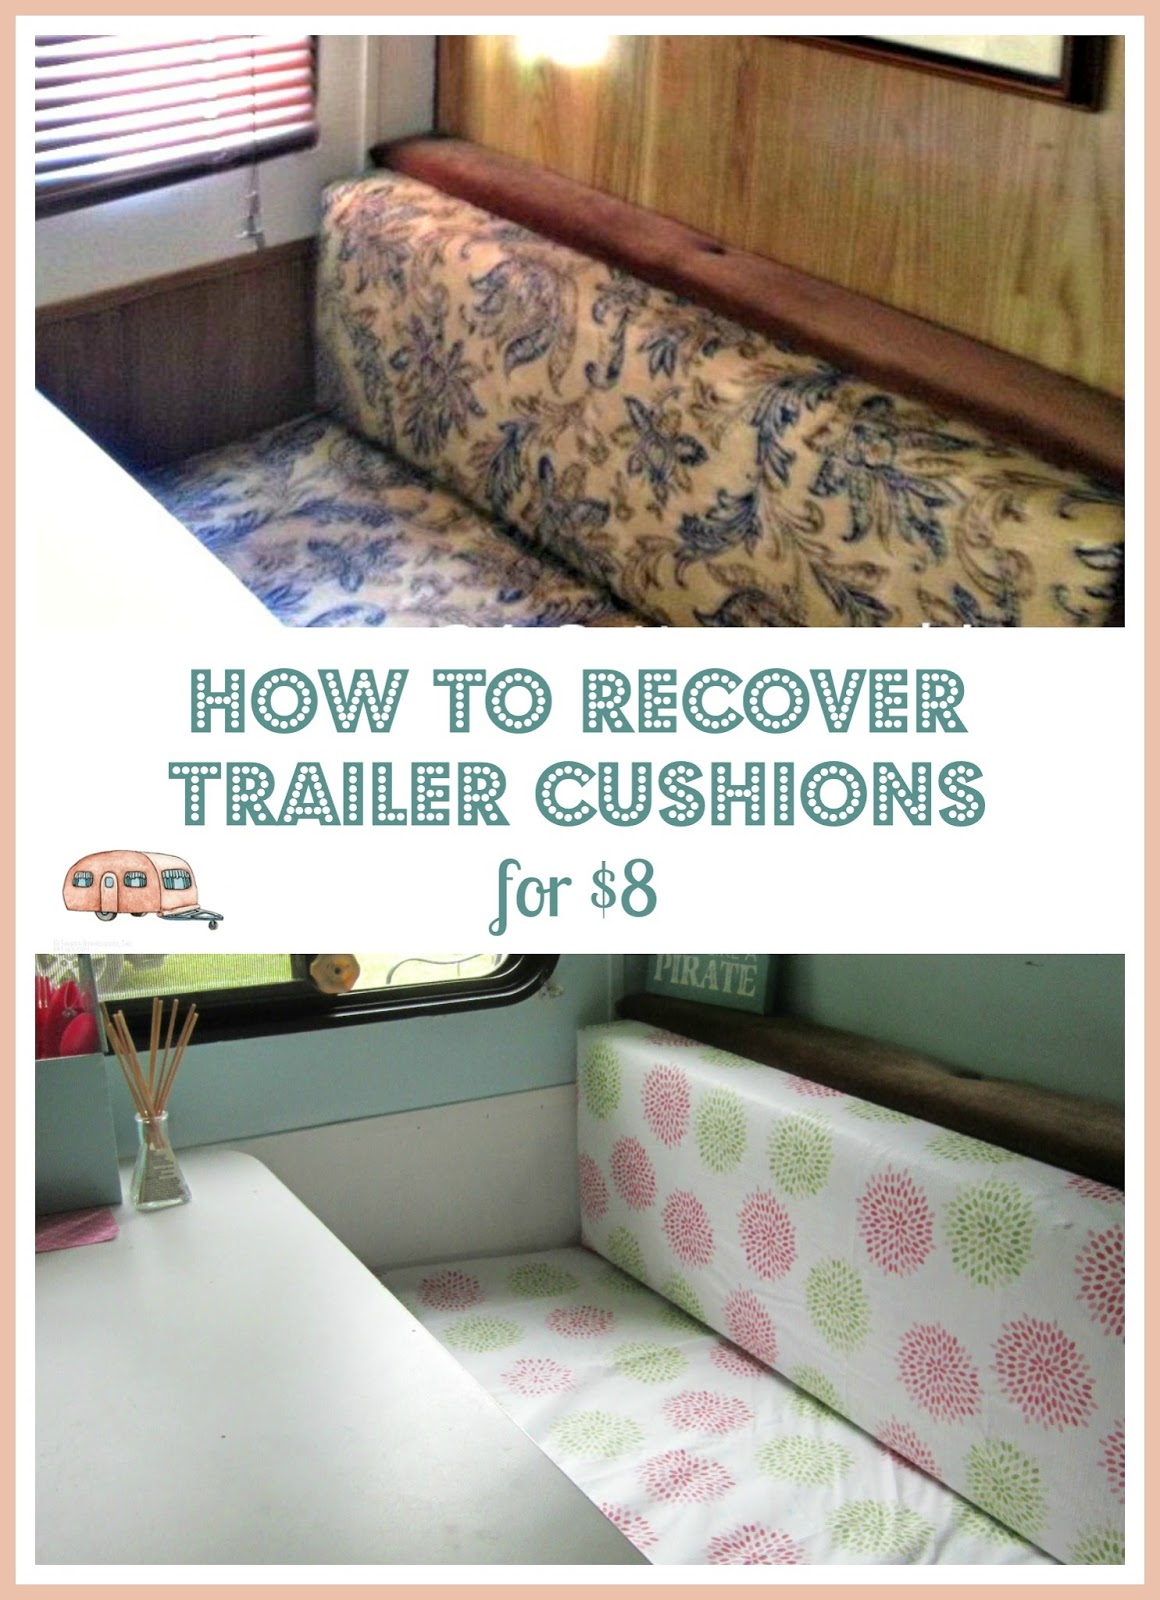 reupholstering sofa cushions do it yourself affordable sets in nairobi glamping update 8 trailer diy dinette cushion covers